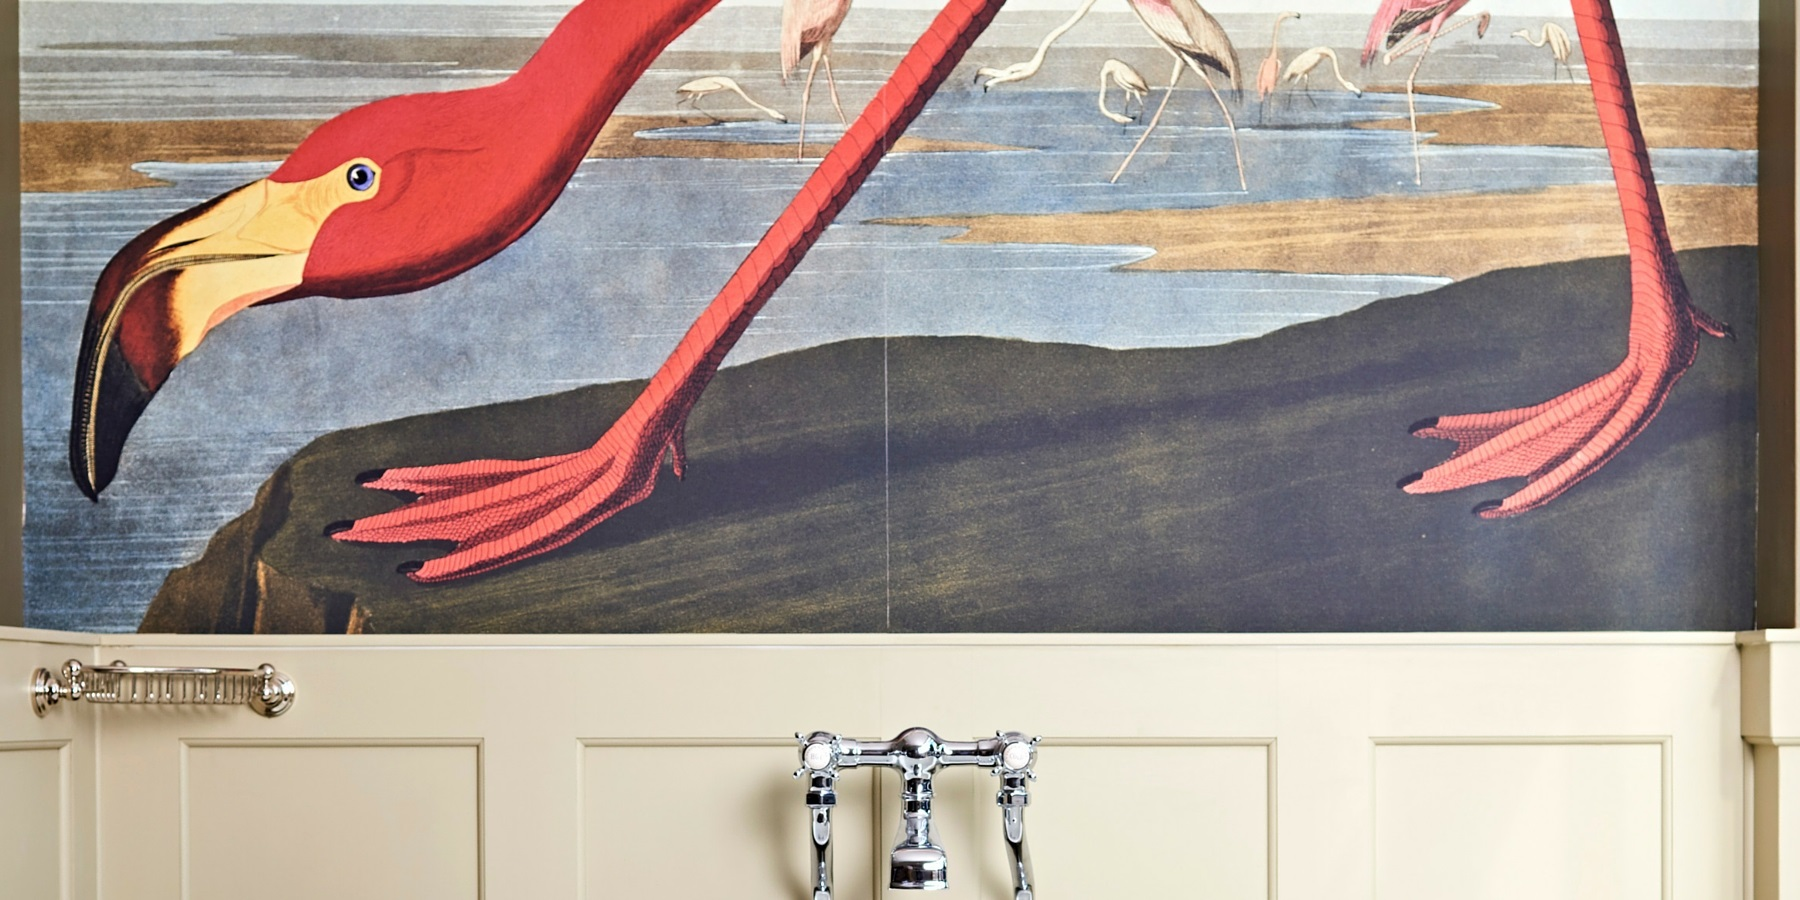 Wall Mural Inspiration from burlanes interiors -